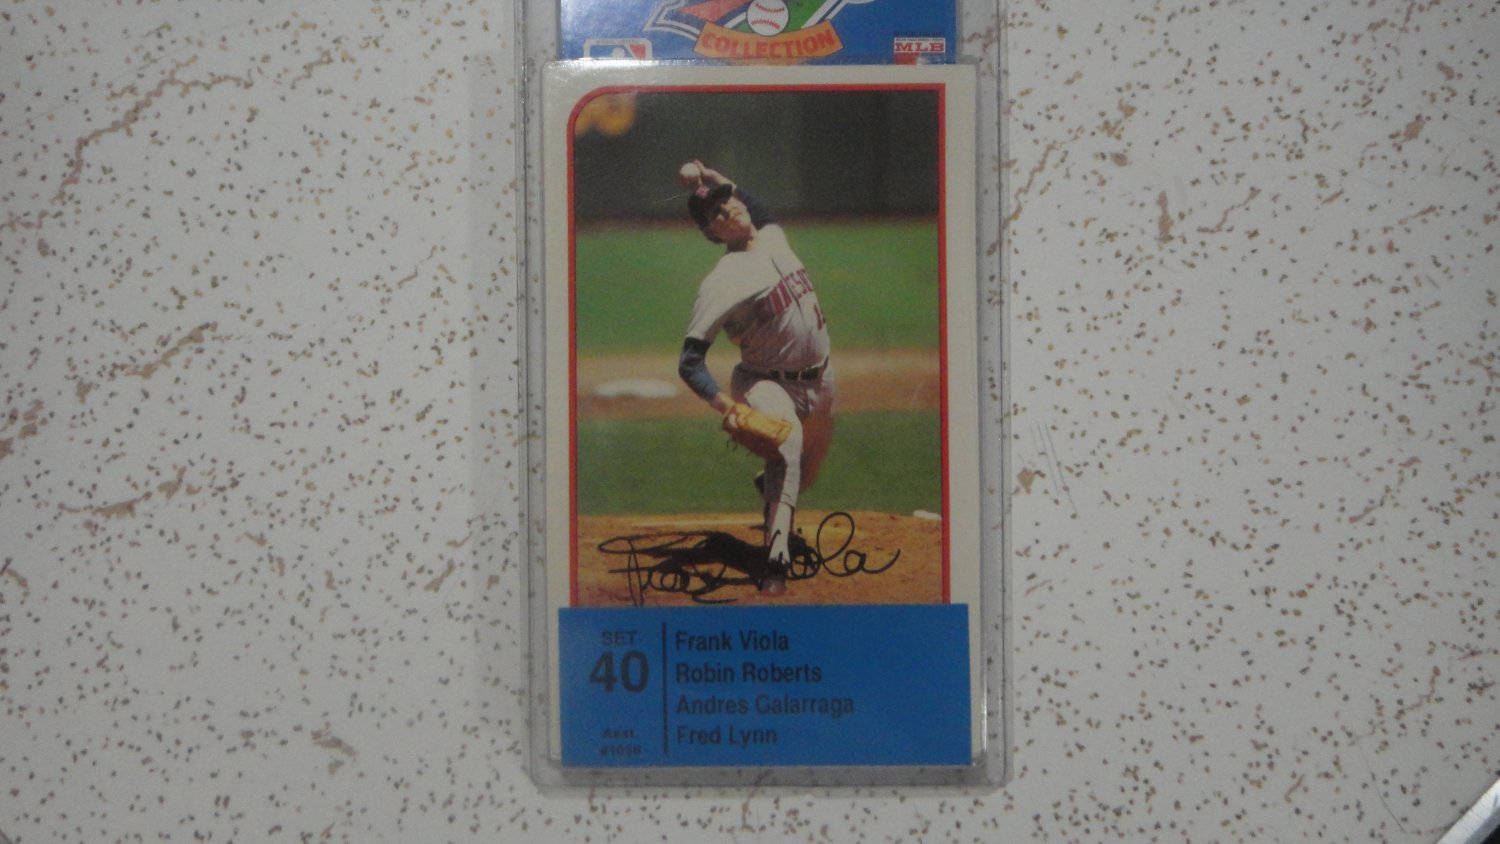 1989 Topps Baseball Talk Collection Soundcard Set #40, Brand New, Sealed. LooK!